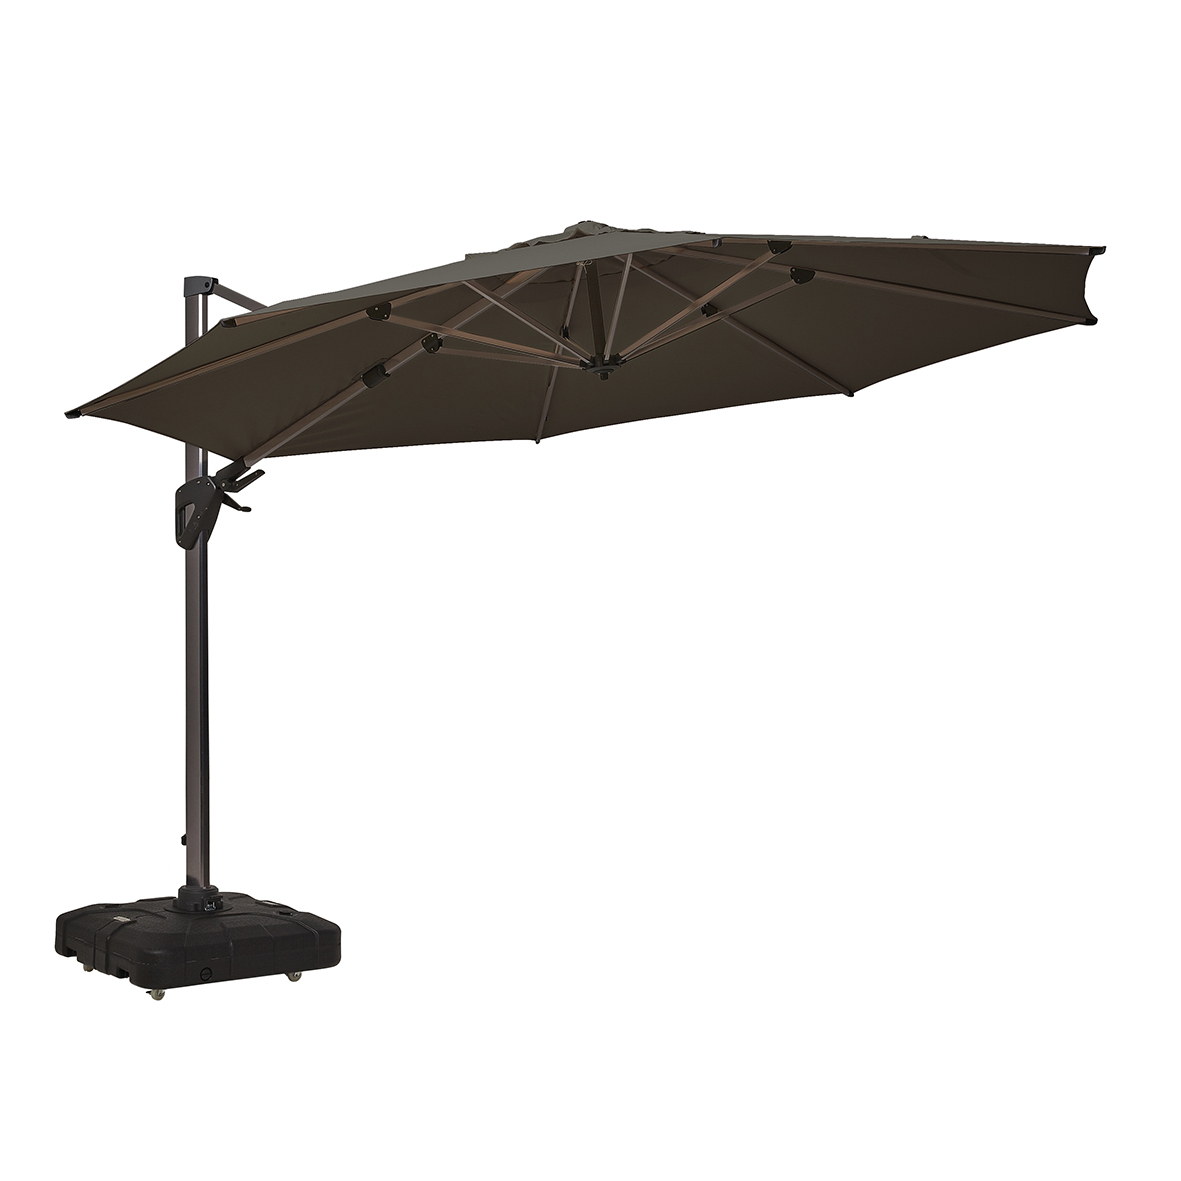 Coolaroo In Most Current Coolaroo Cantilever Umbrellas (View 9 of 20)